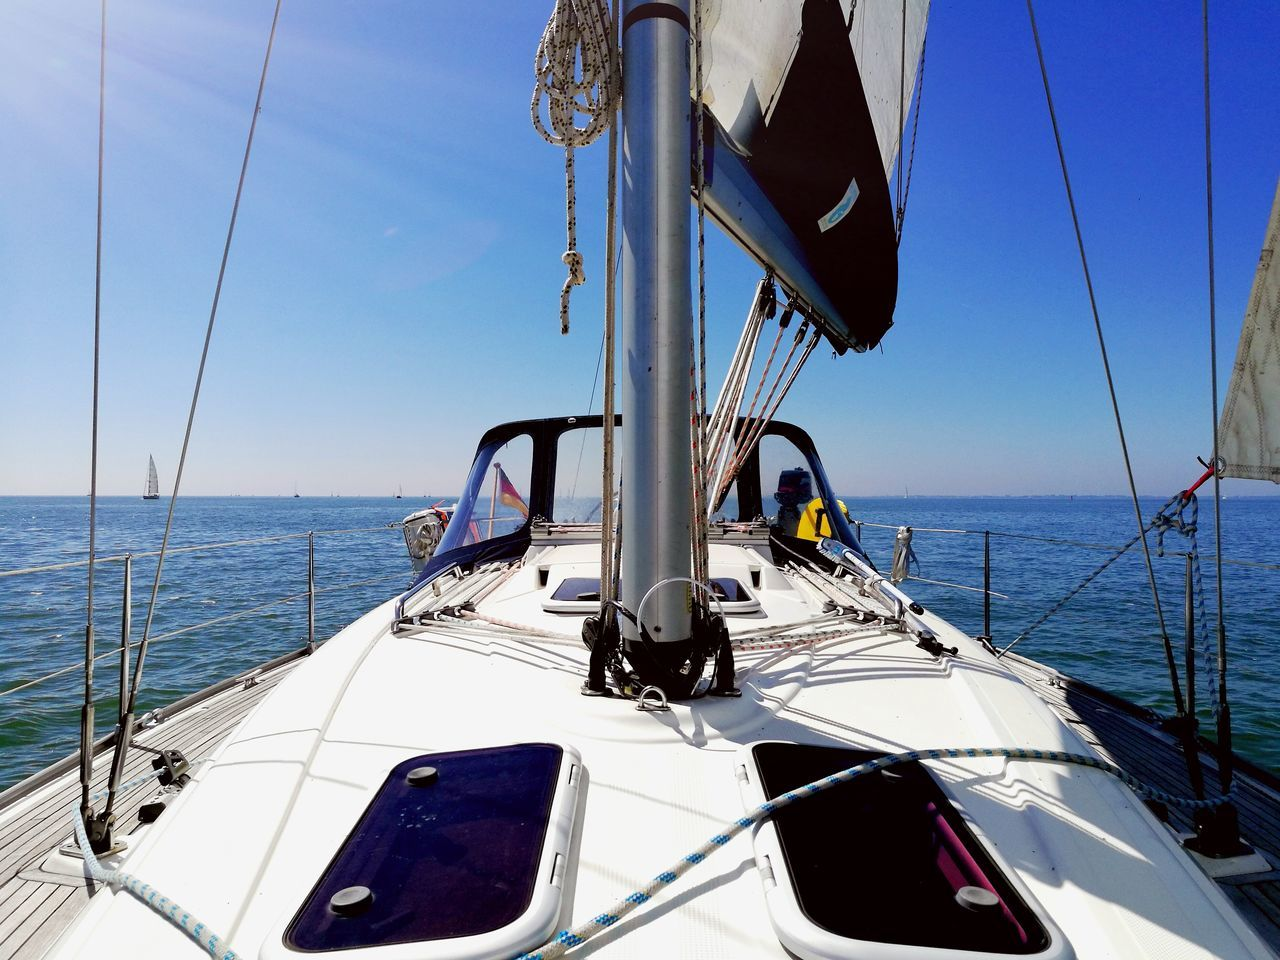 Live For The Story Sea Nautical Vessel Sailing Sailing Ship Sailboat Boat Deck Yacht Outdoors No People Yachting Wave Day Water Regatta Sky Sailing Ship Bavaria Transportation Horizon Over Water Beauty In Nature Ijsselmeer